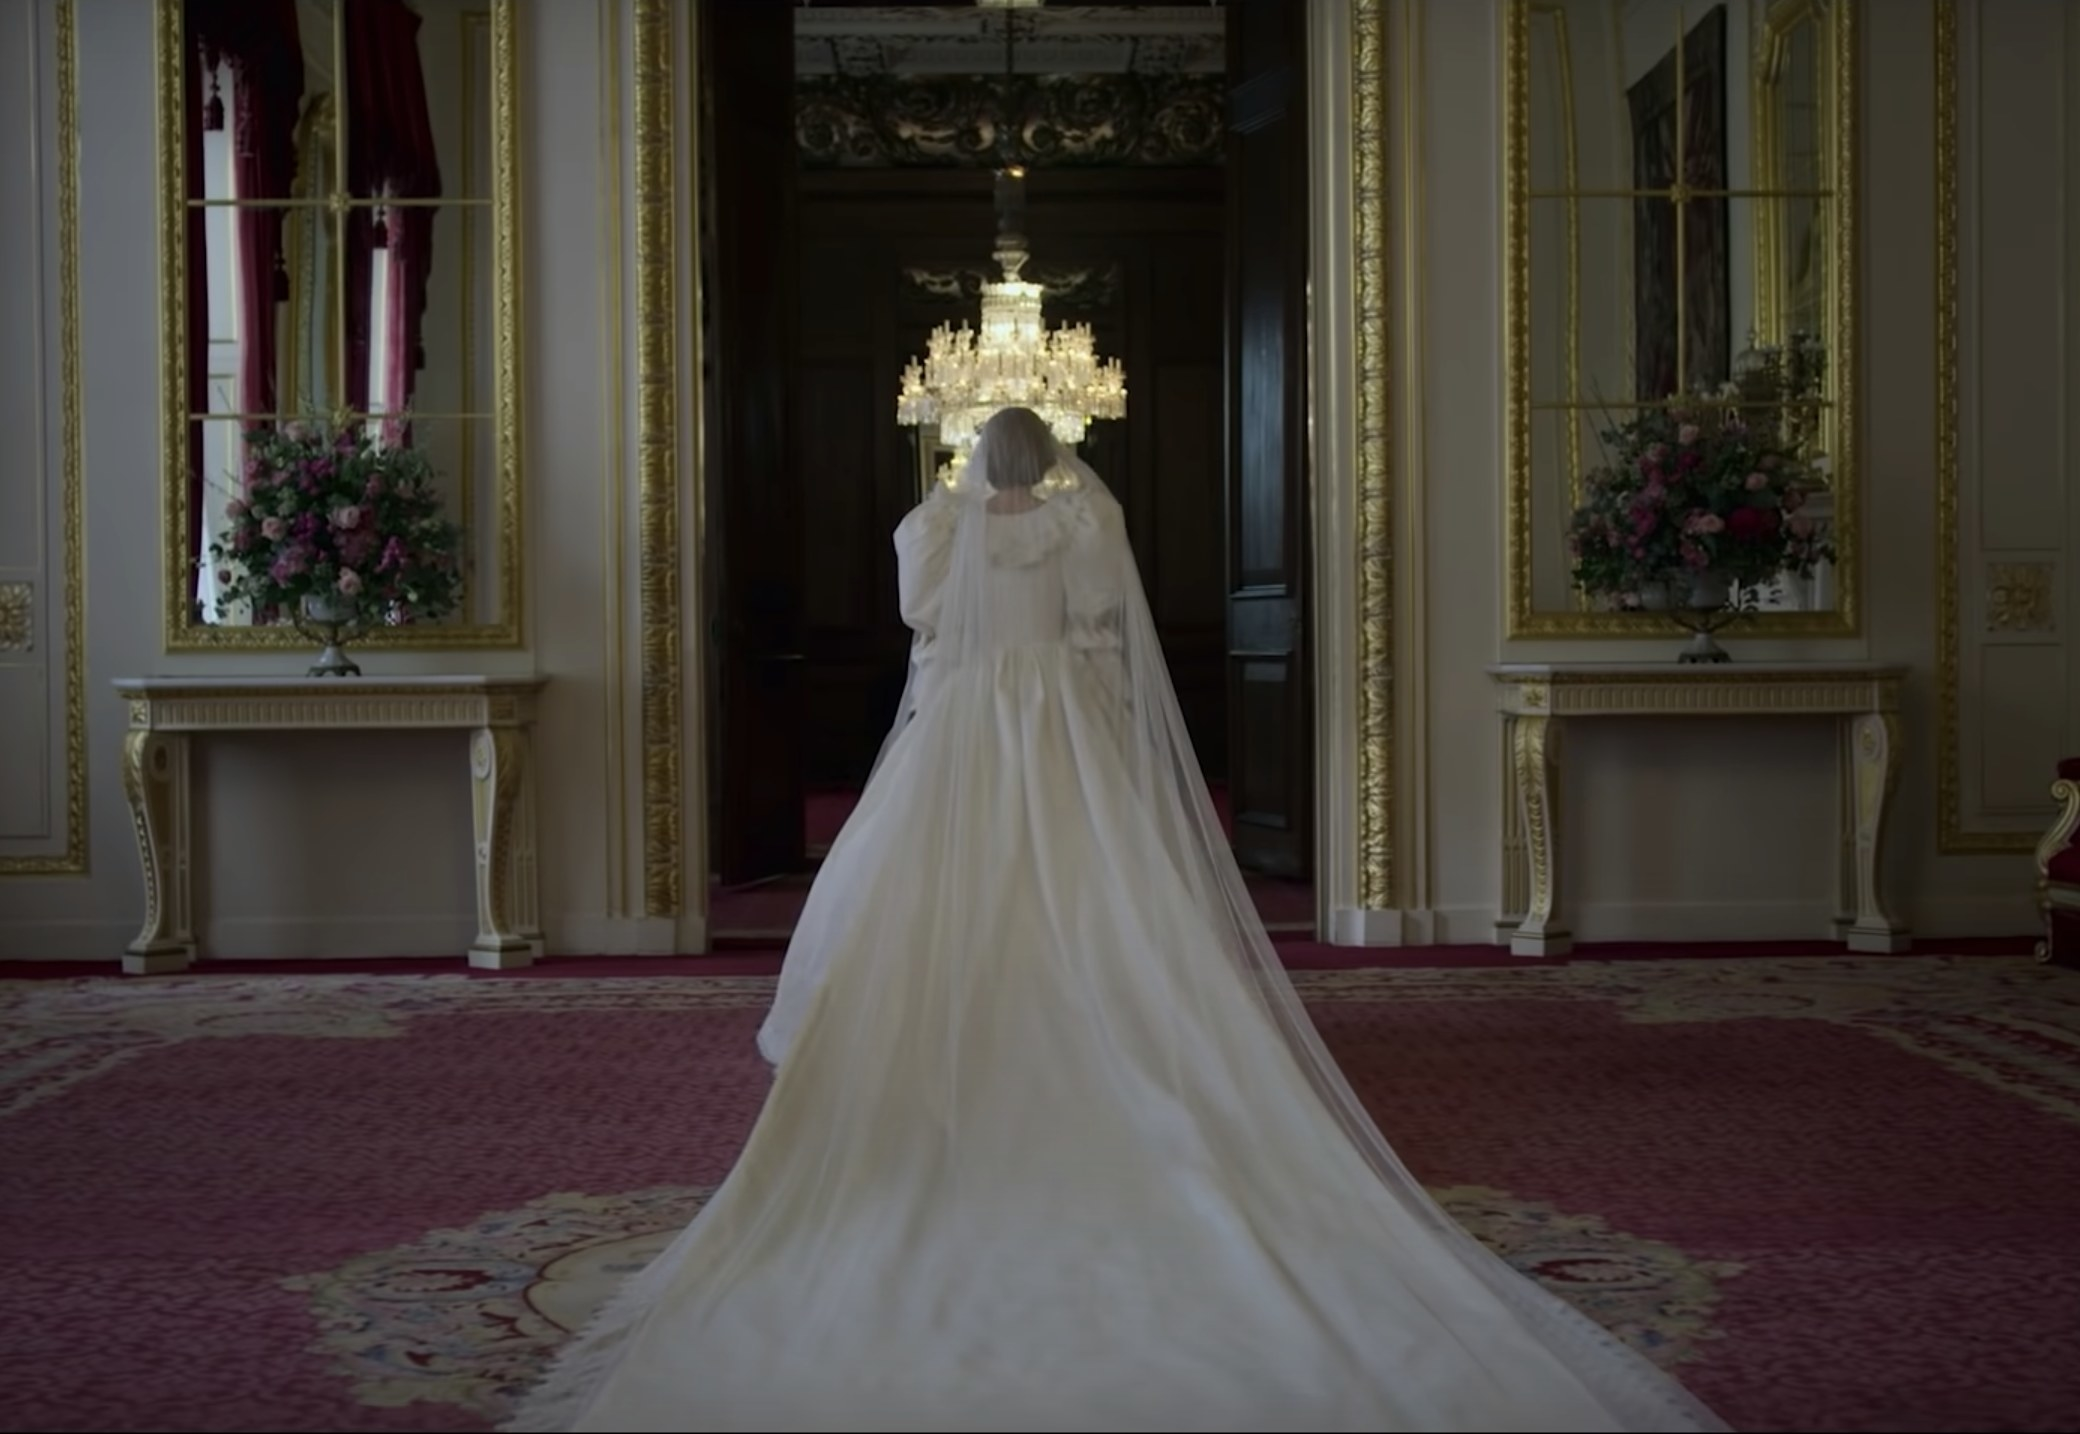 The back view of Princess Diana's wedding gown on the The Crown